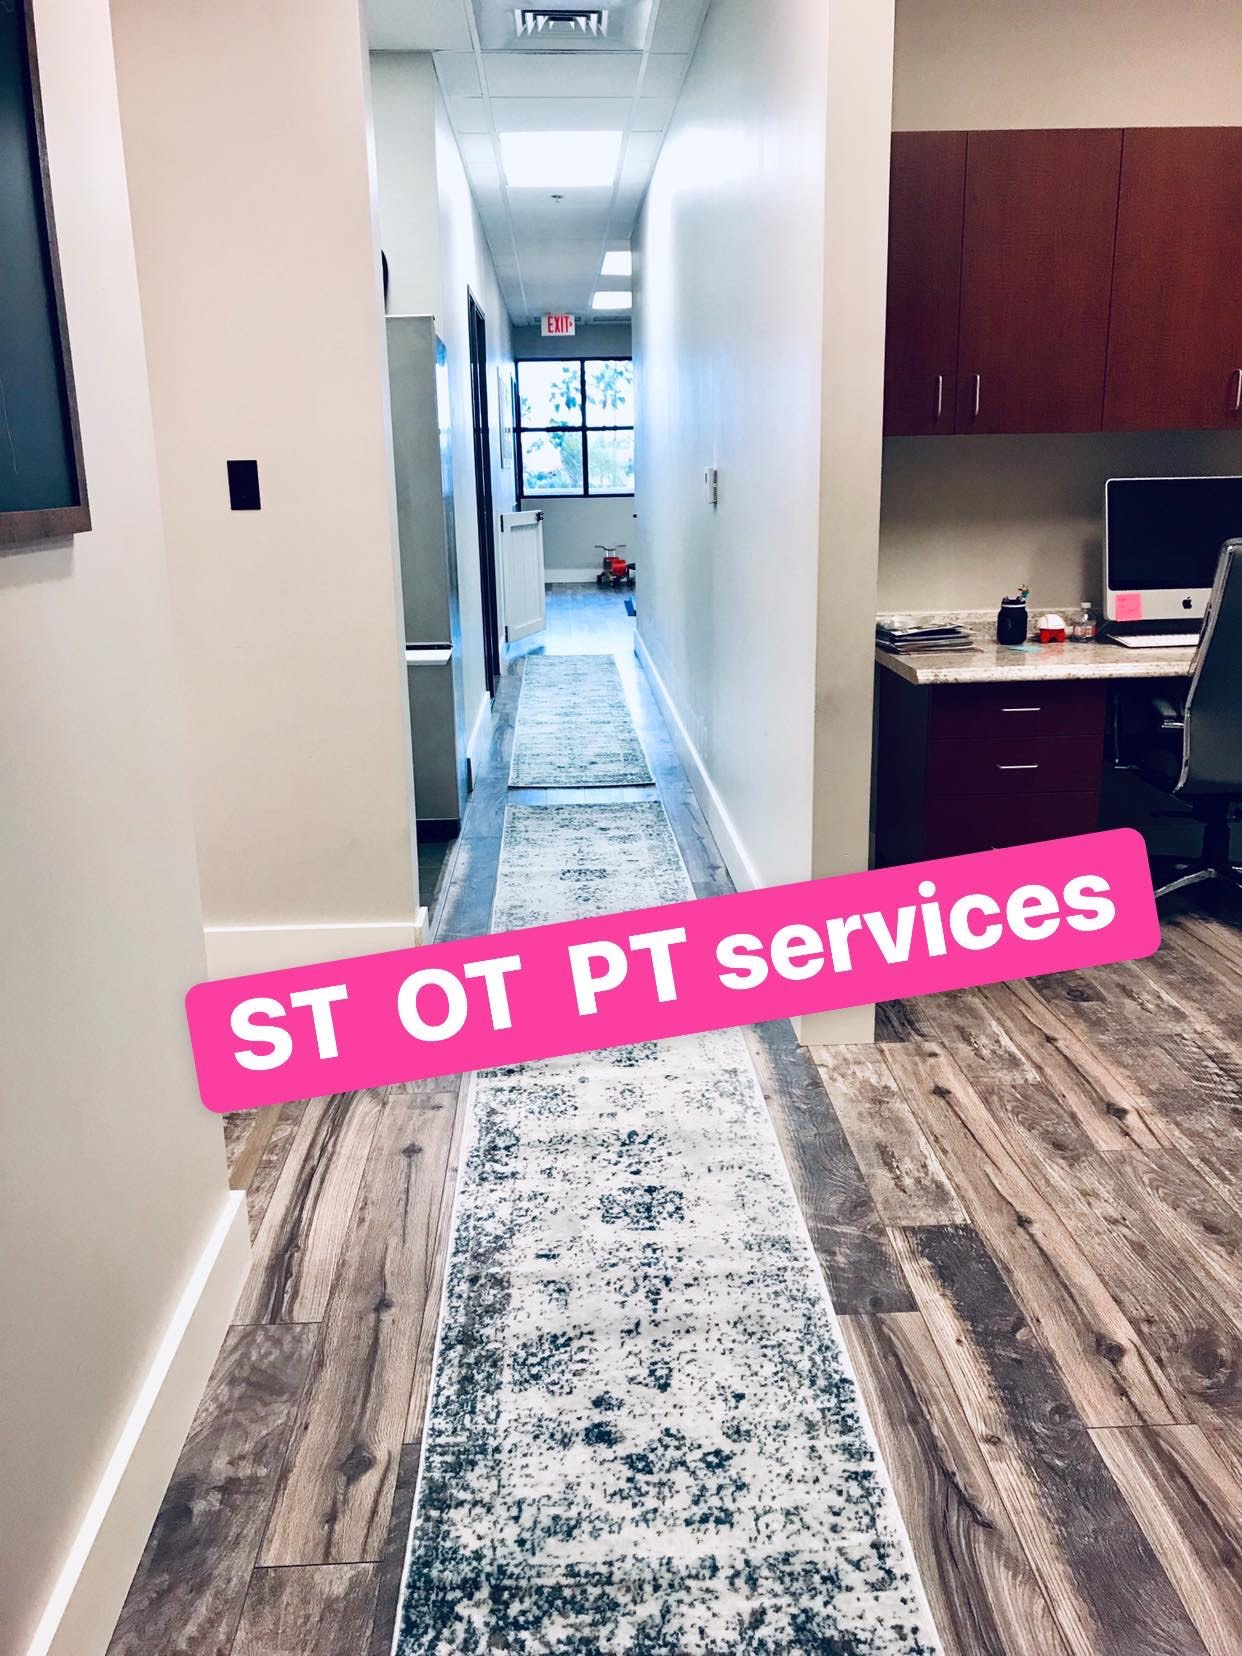 cdt kids ot st pt services